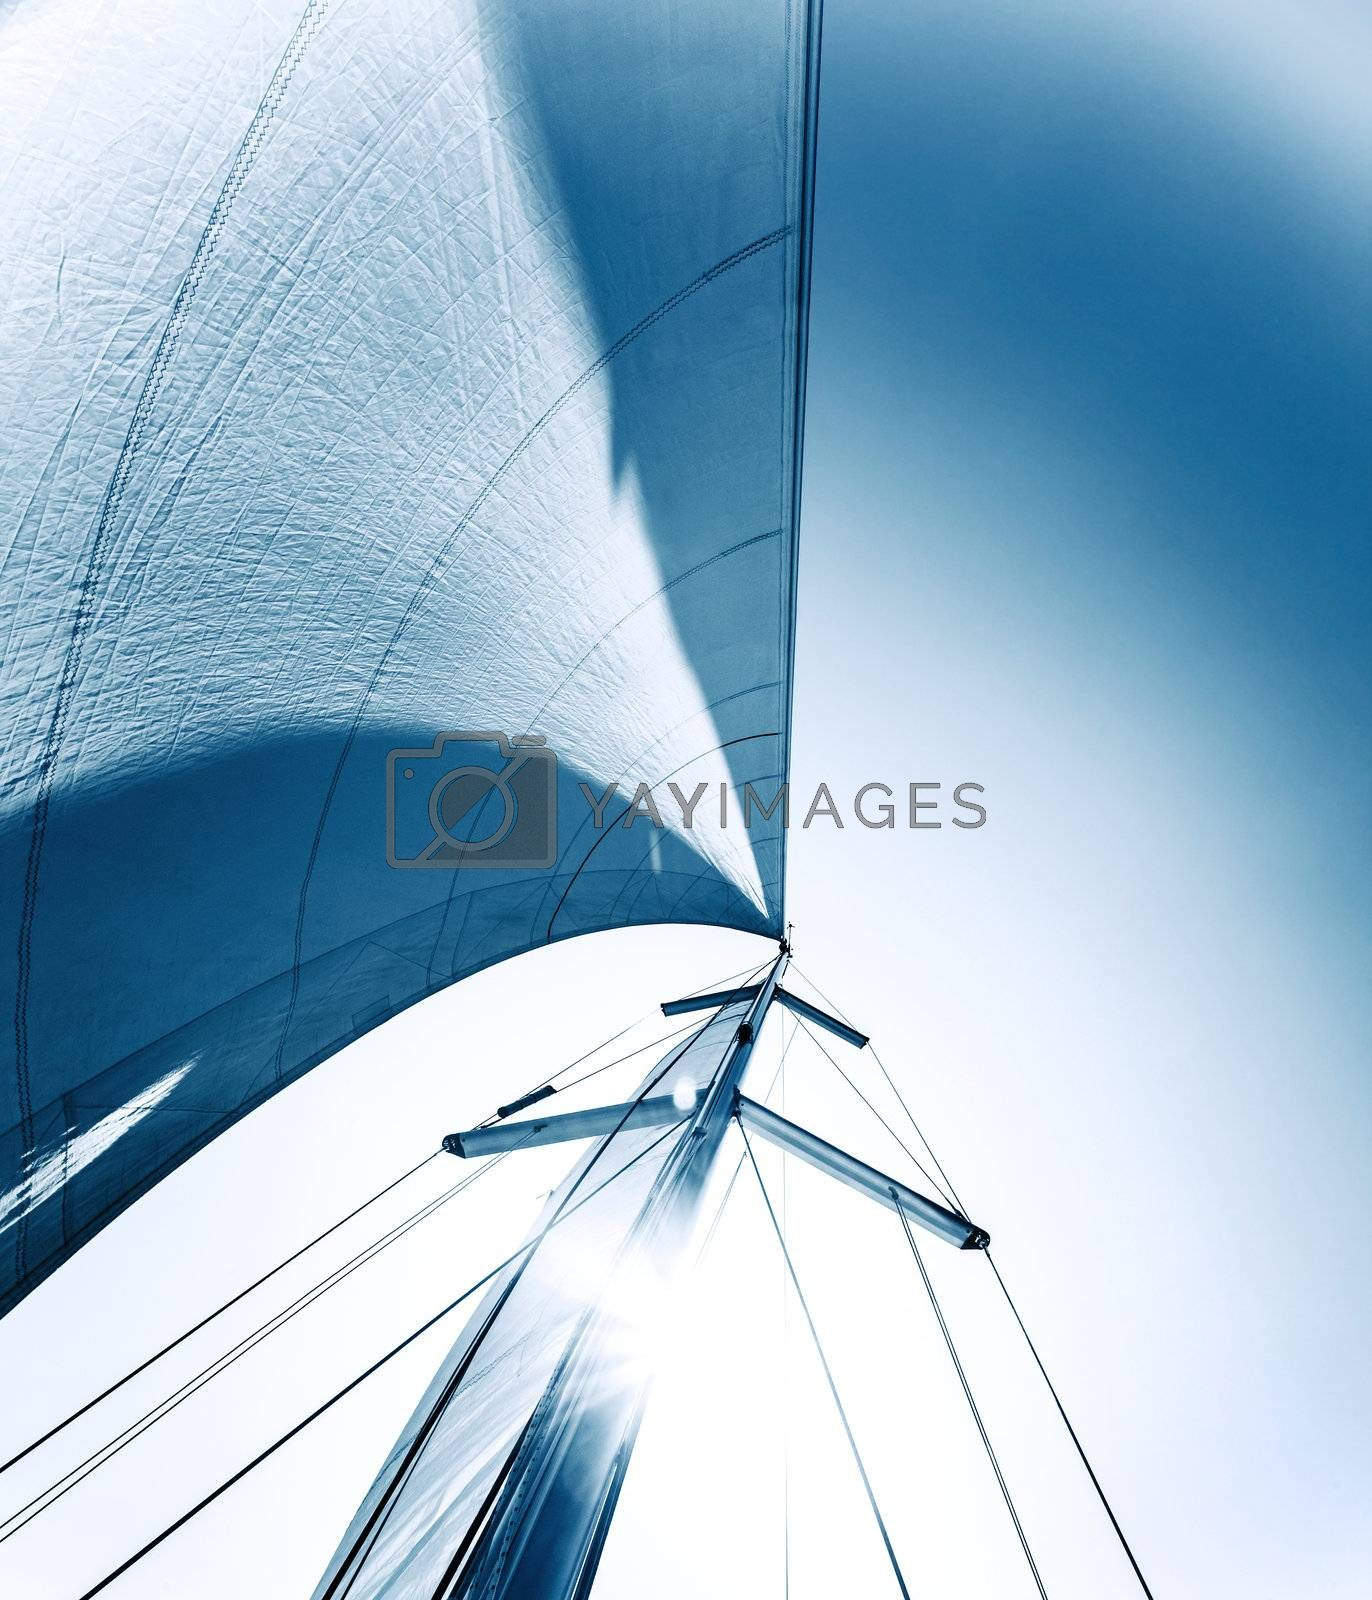 Sailboat in action, big white sail raised over blue clear sky, luxury leisure, summertime activities and extreme sport, boat parts with sun rays, sailing trip vacation, freedom concept